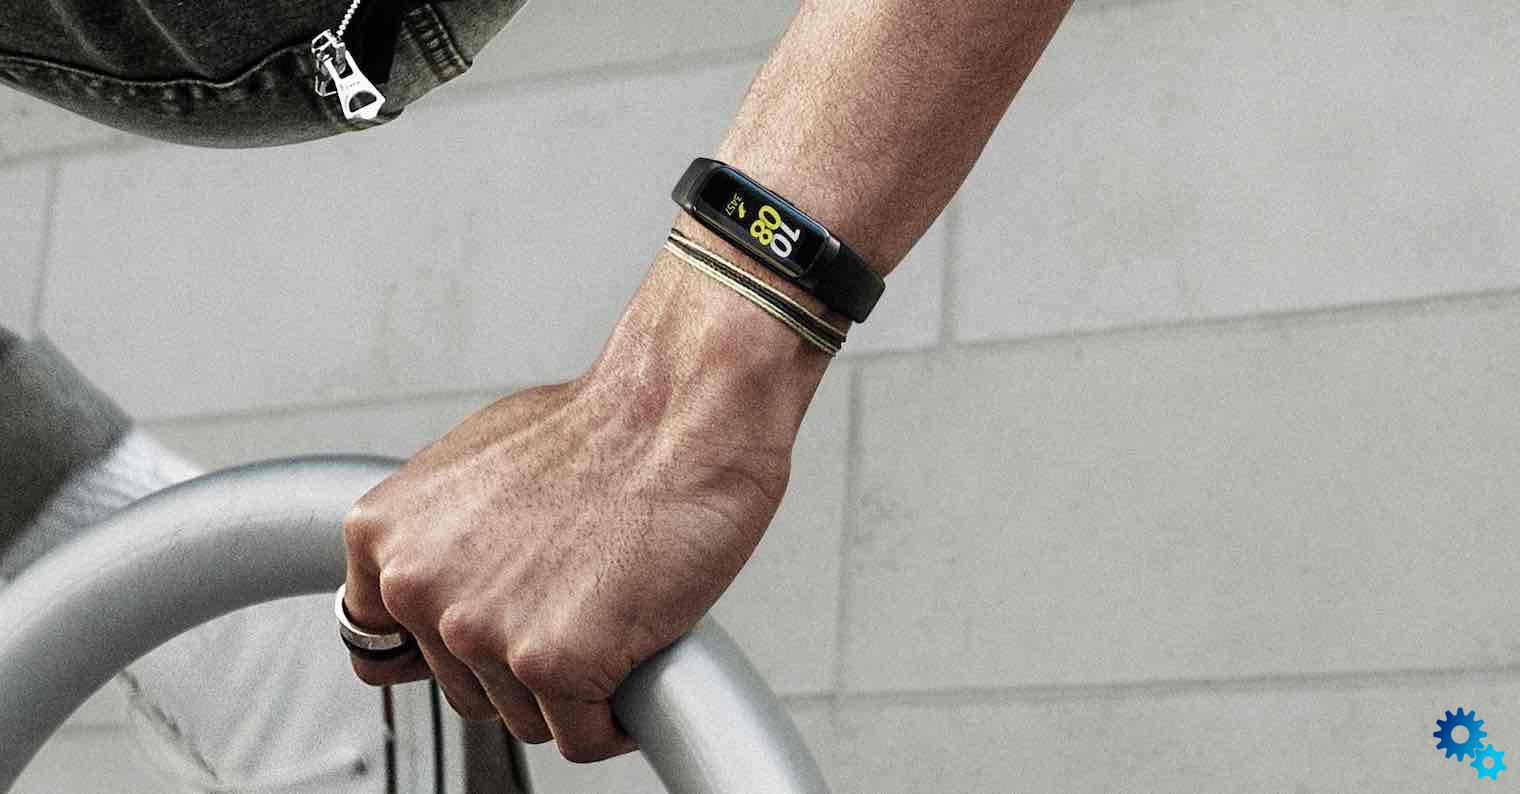 Until Sunday: MP offers Galaxy Fit smart bracelets at the lowest price